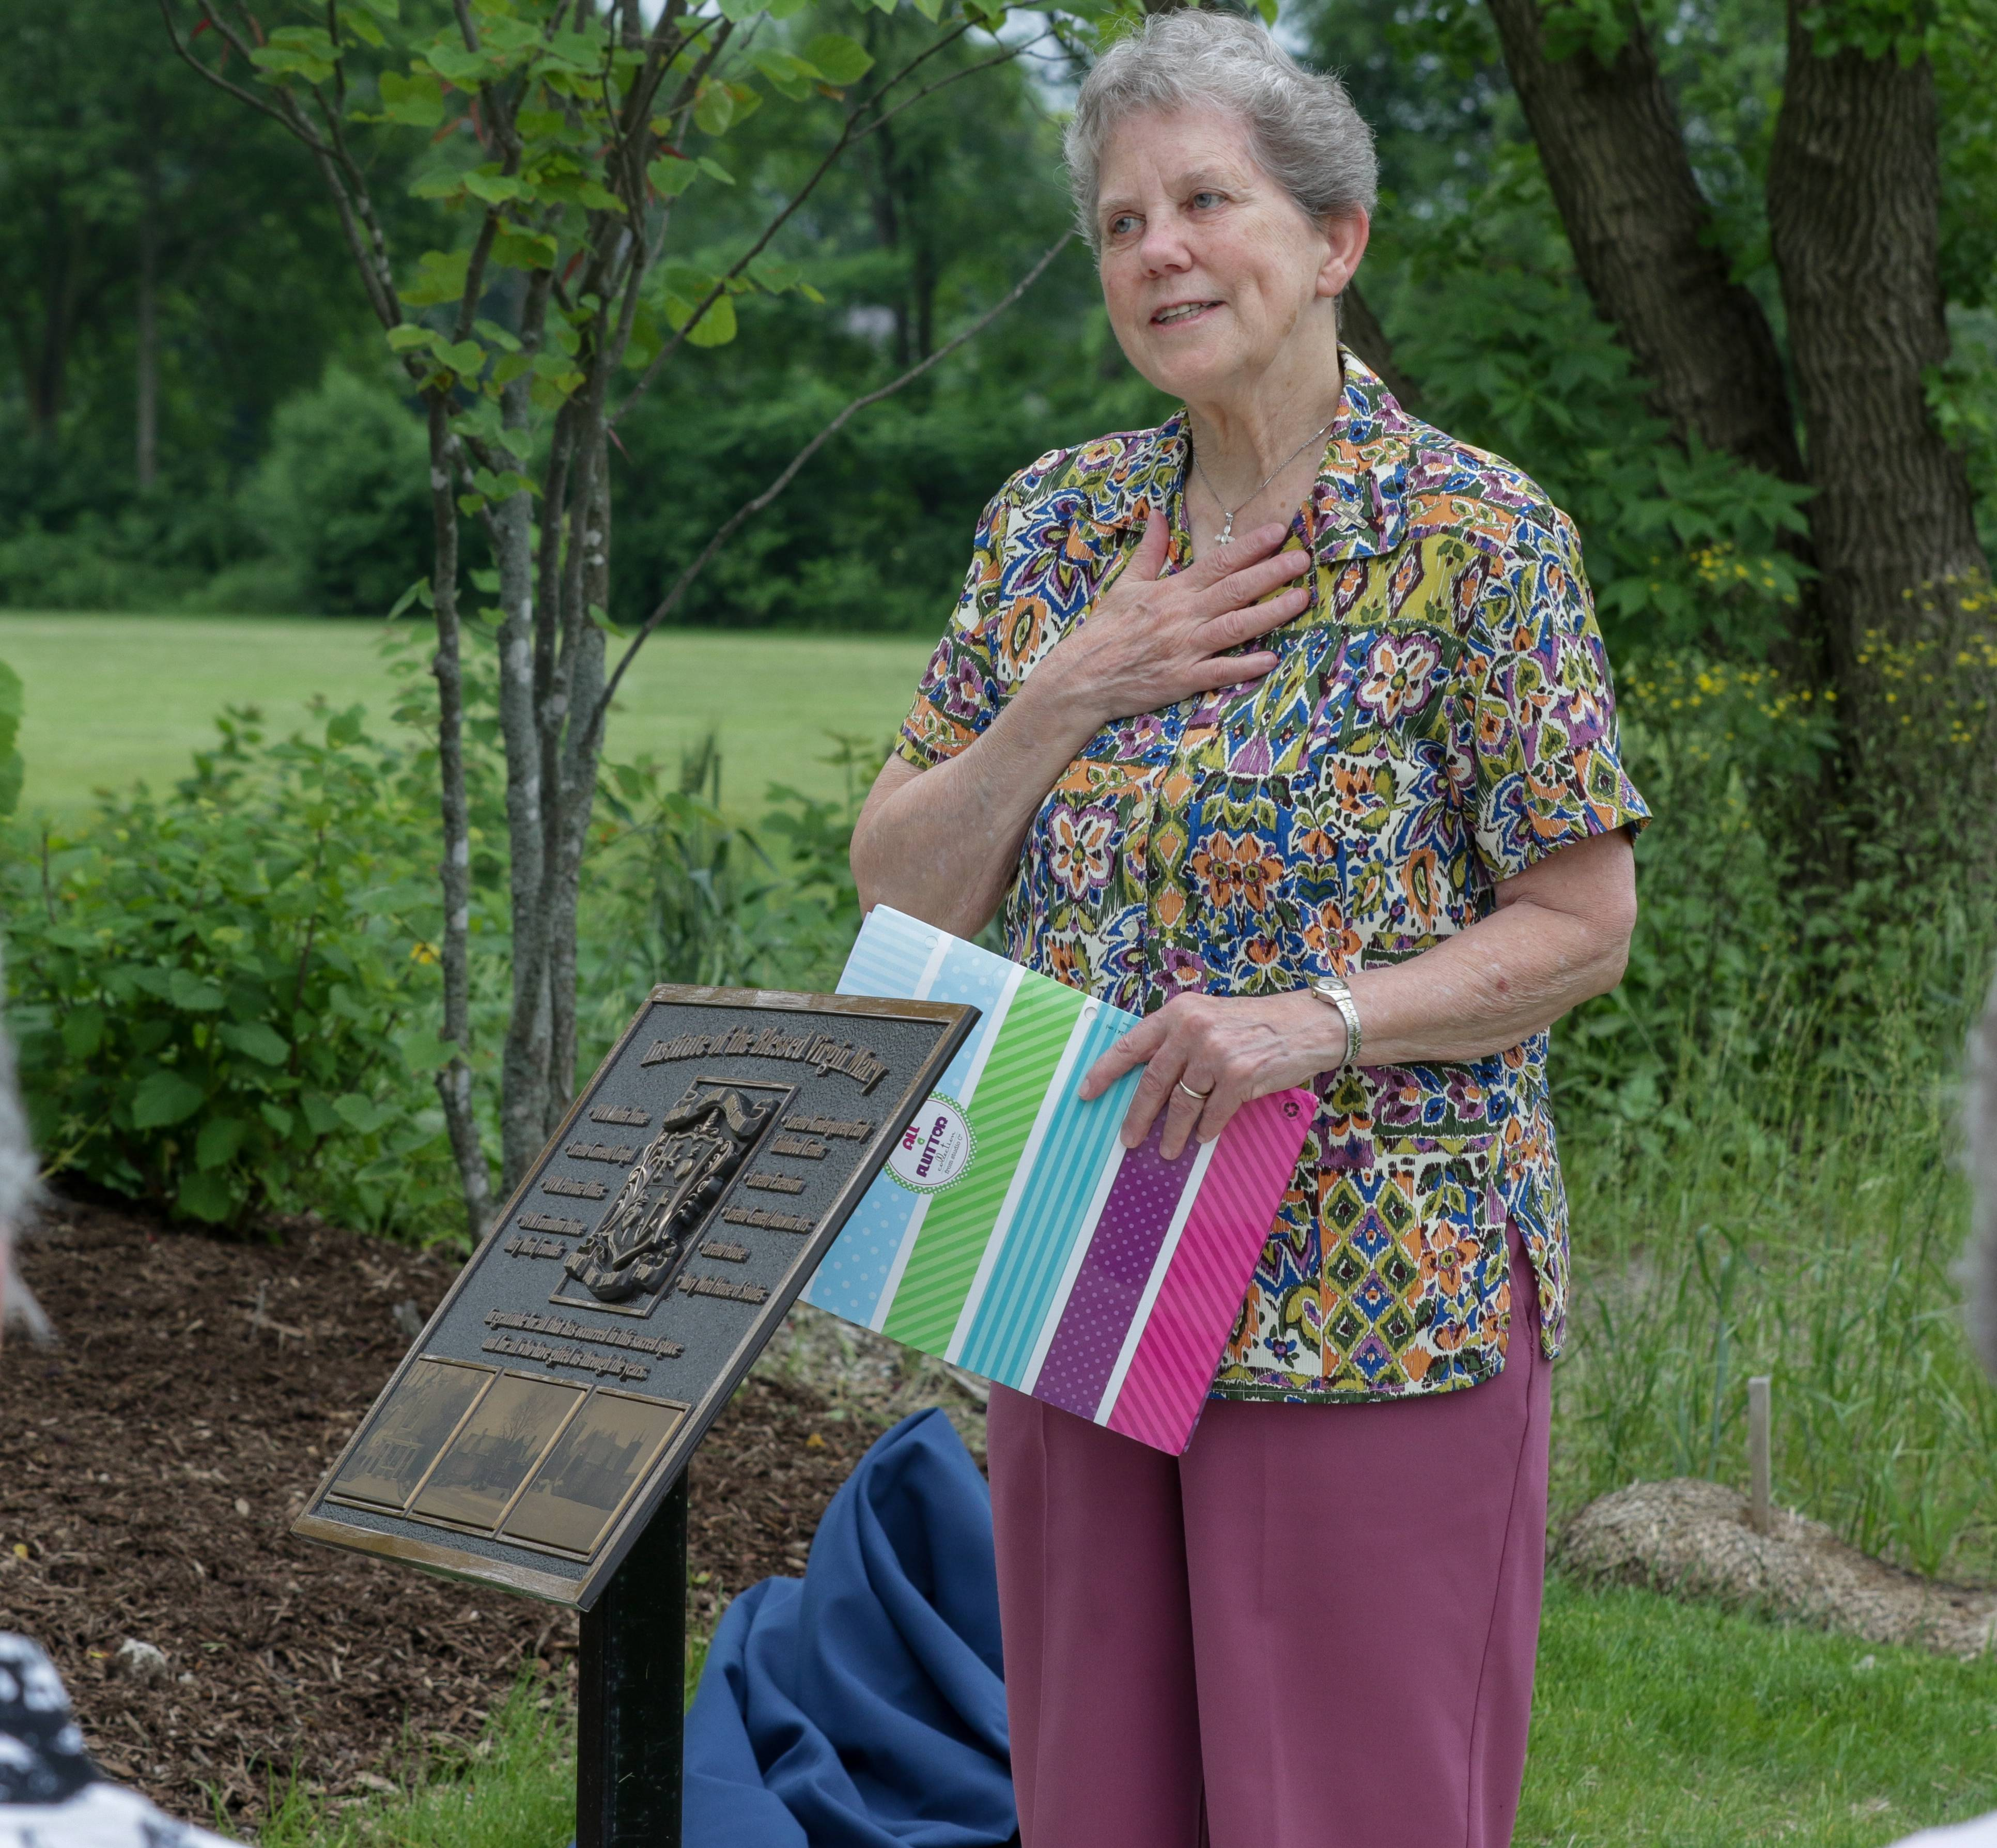 Sister Judy Illig helps unveil a plaque Tuesday as a tribute to the work of the Loretto nuns at their former convent in Wheaton.